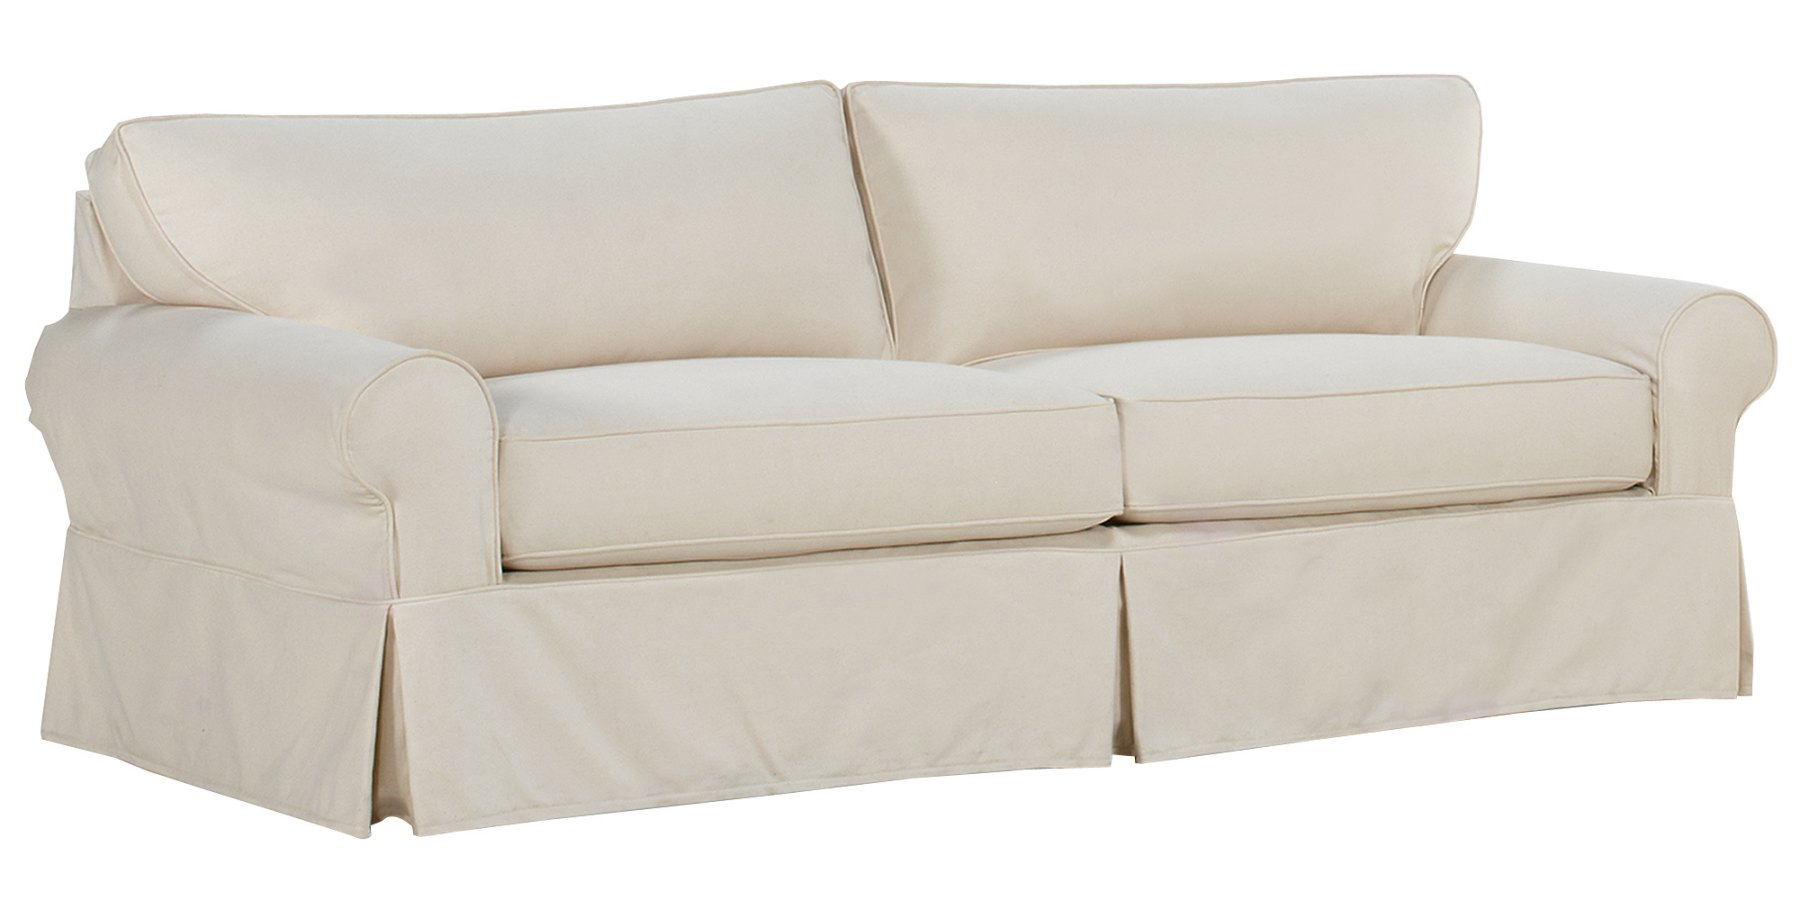 Oversized Sofas And Sofa Slipcover Furniture Online